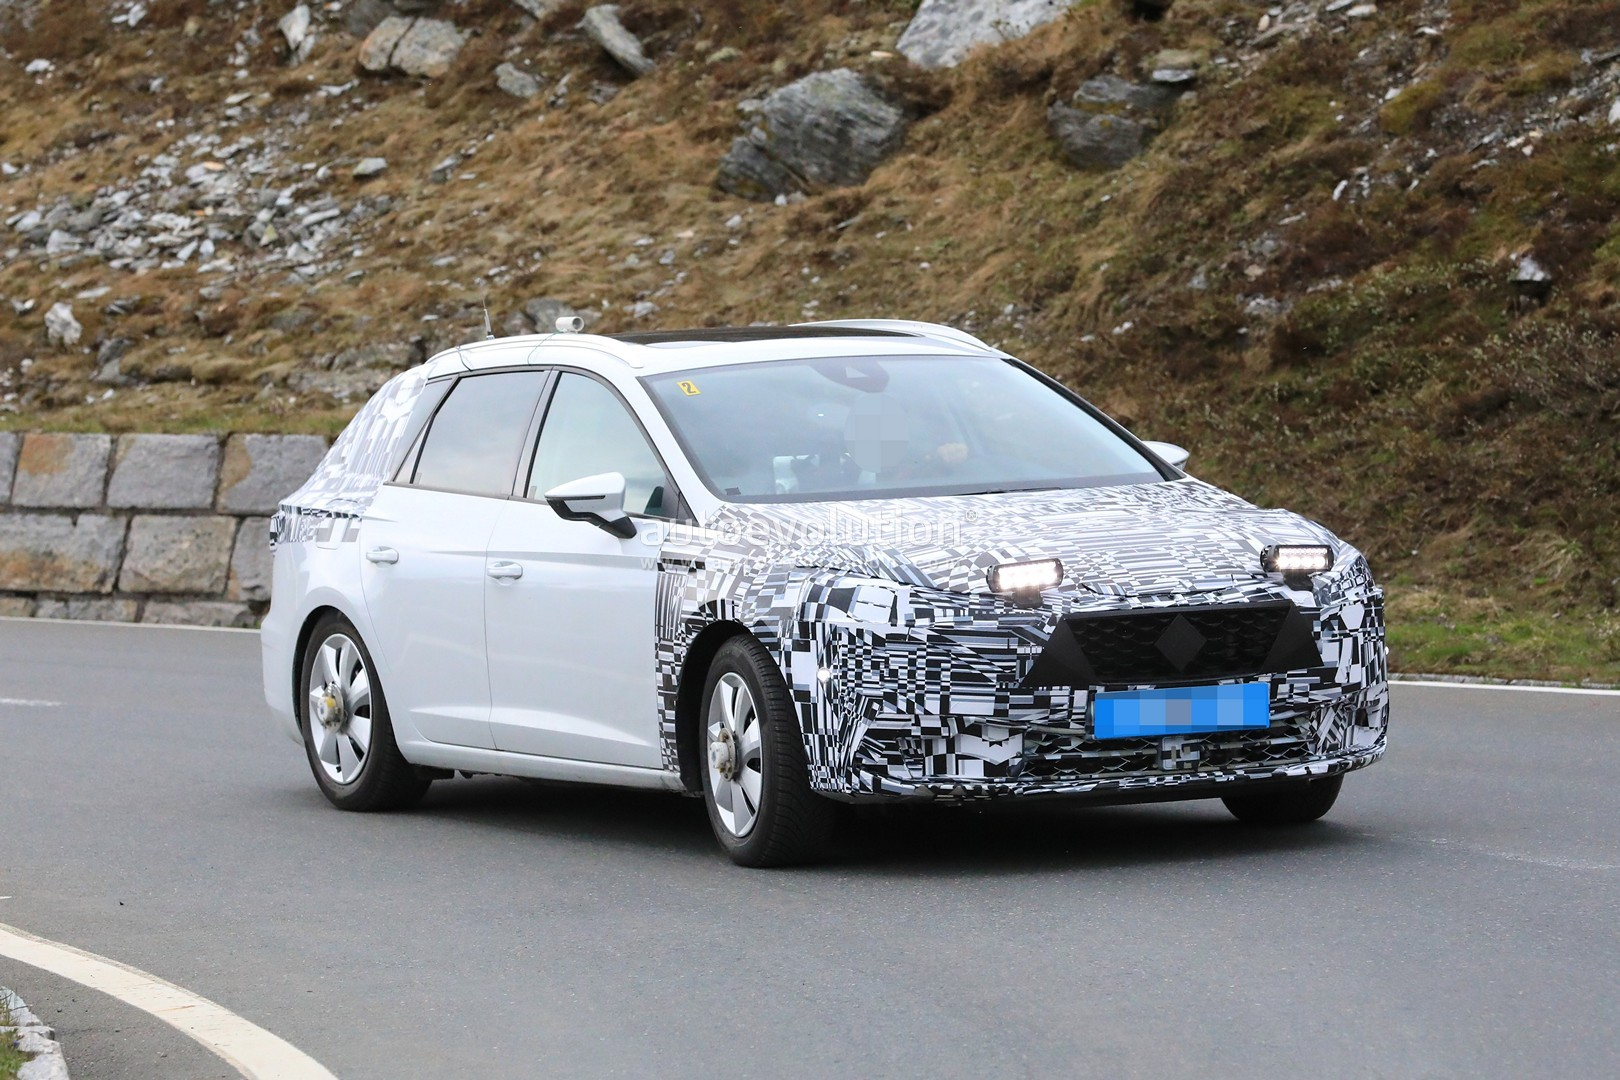 spyshots 2019 seat leon shows up for the first time has. Black Bedroom Furniture Sets. Home Design Ideas